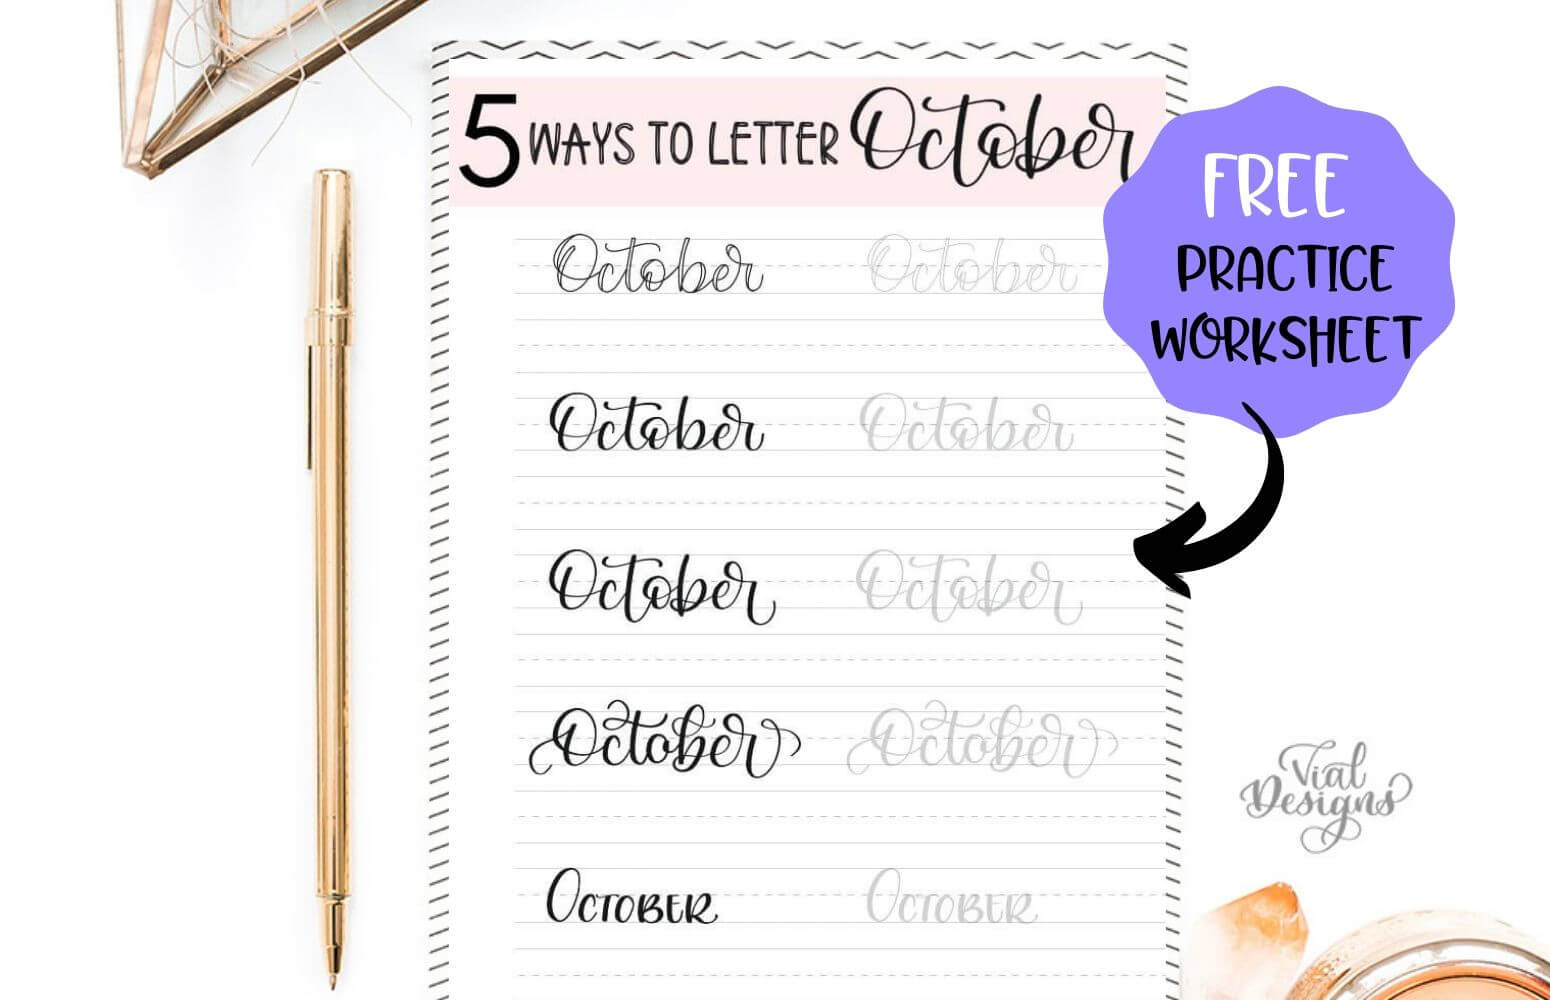 Free 5 Ways to Letter October Practice Worksheet by Vial Designs